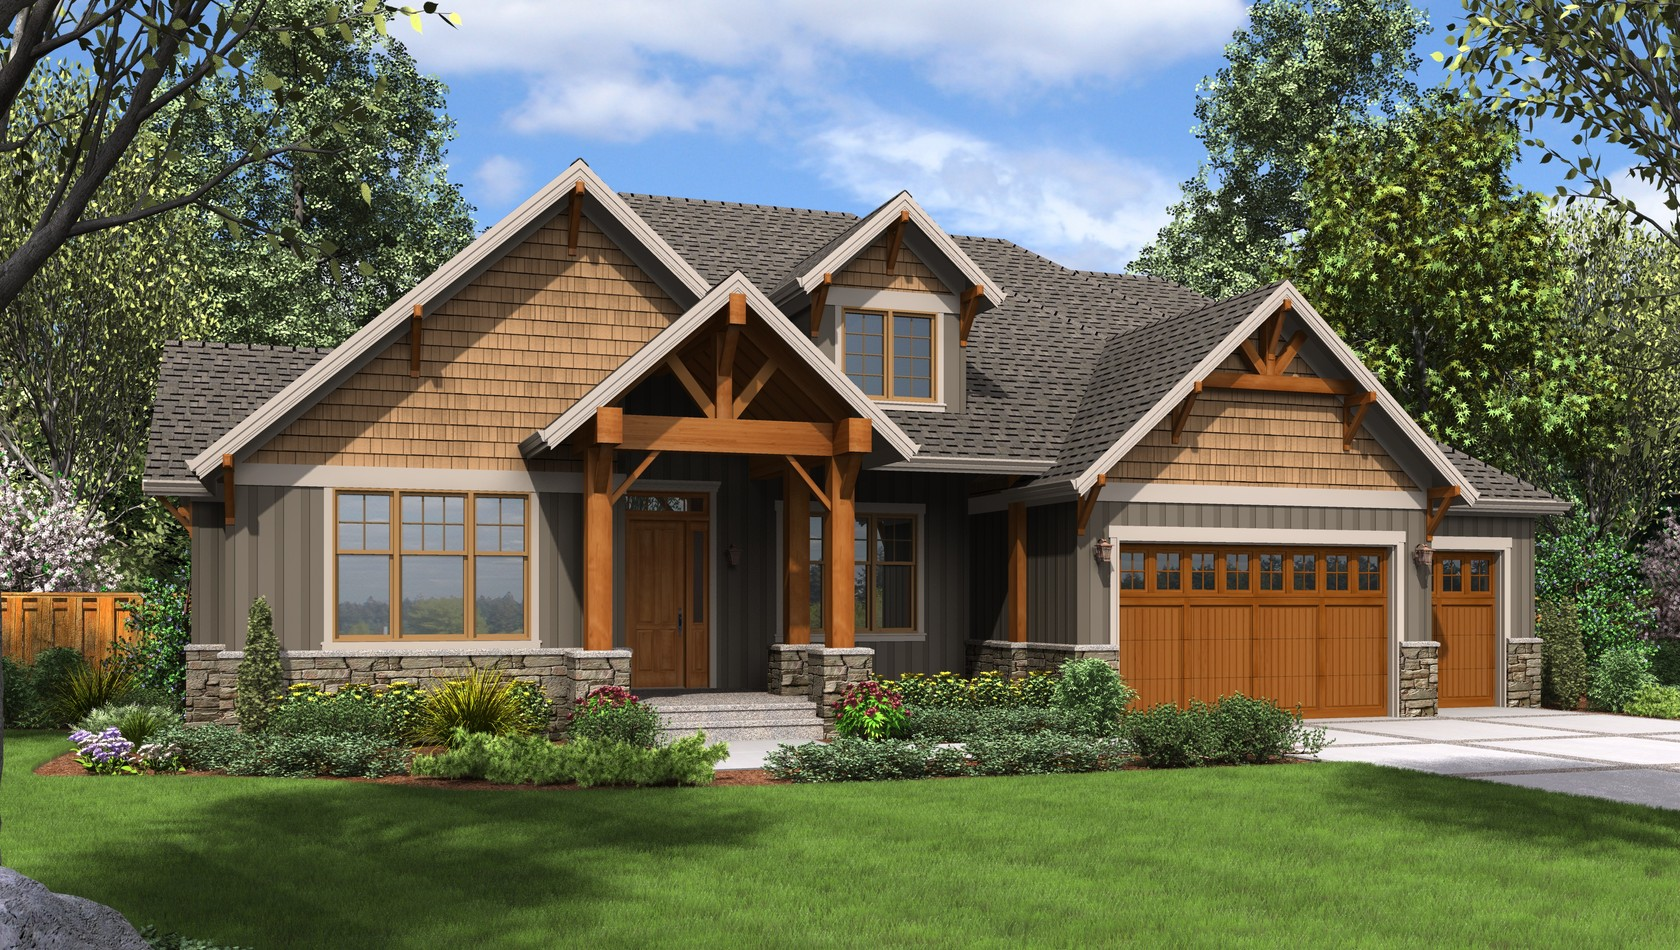 Main image for house plan 23111: The Edgefield